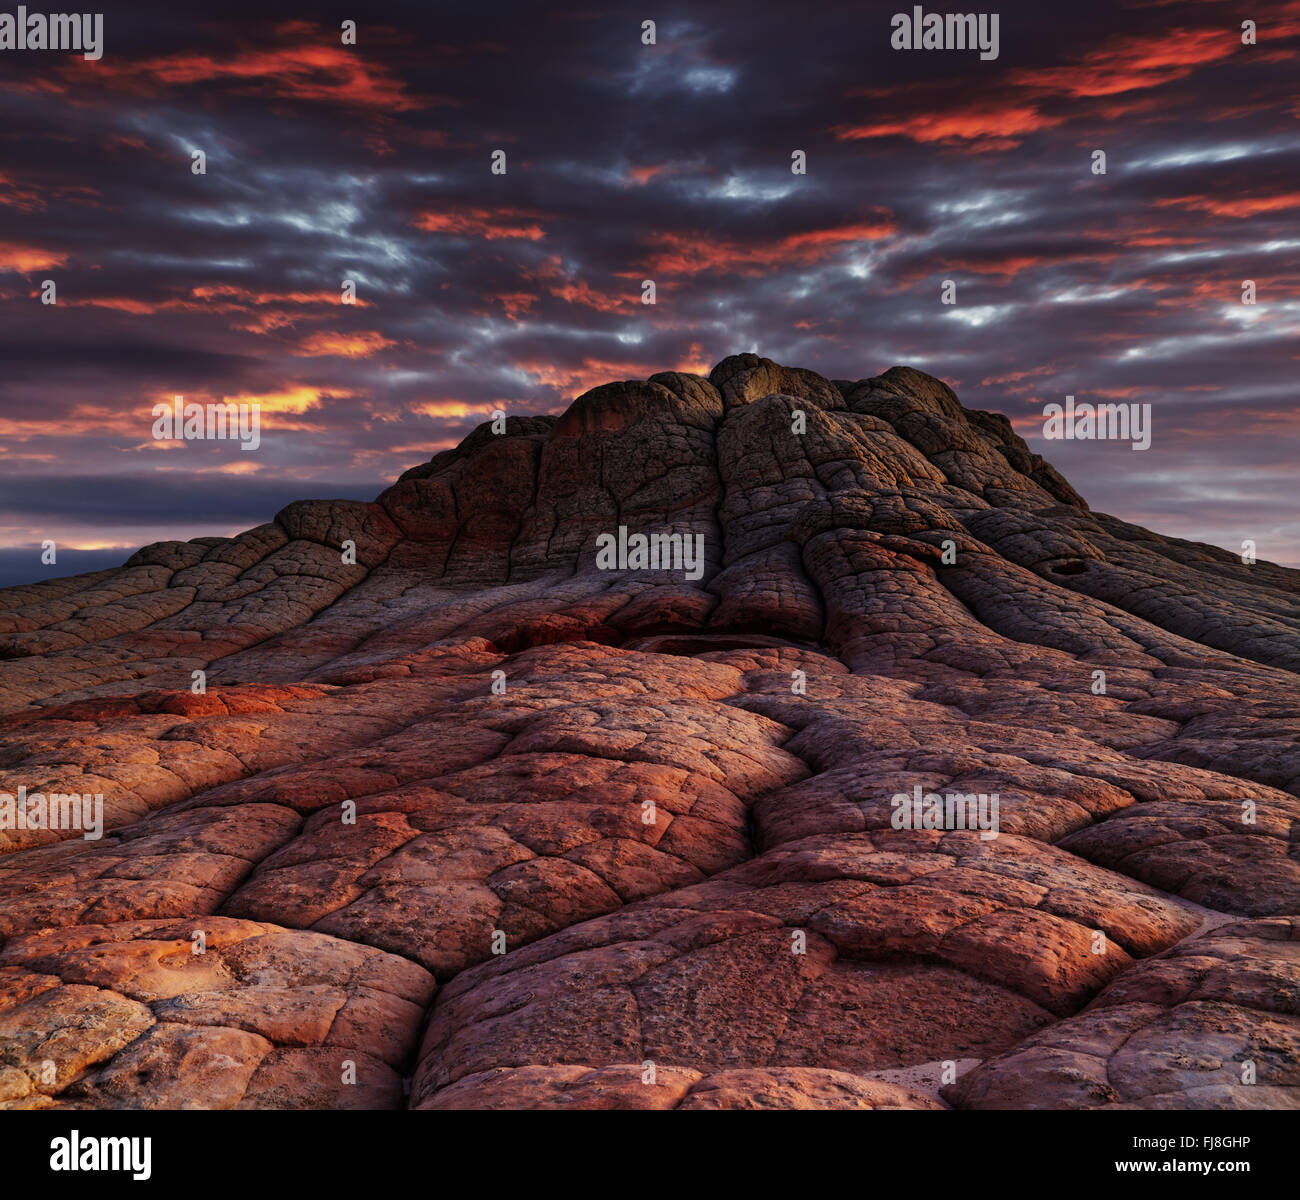 White Pocket rock formations, Vermilion Cliffs National Monument, Arizona, USA - Stock Image